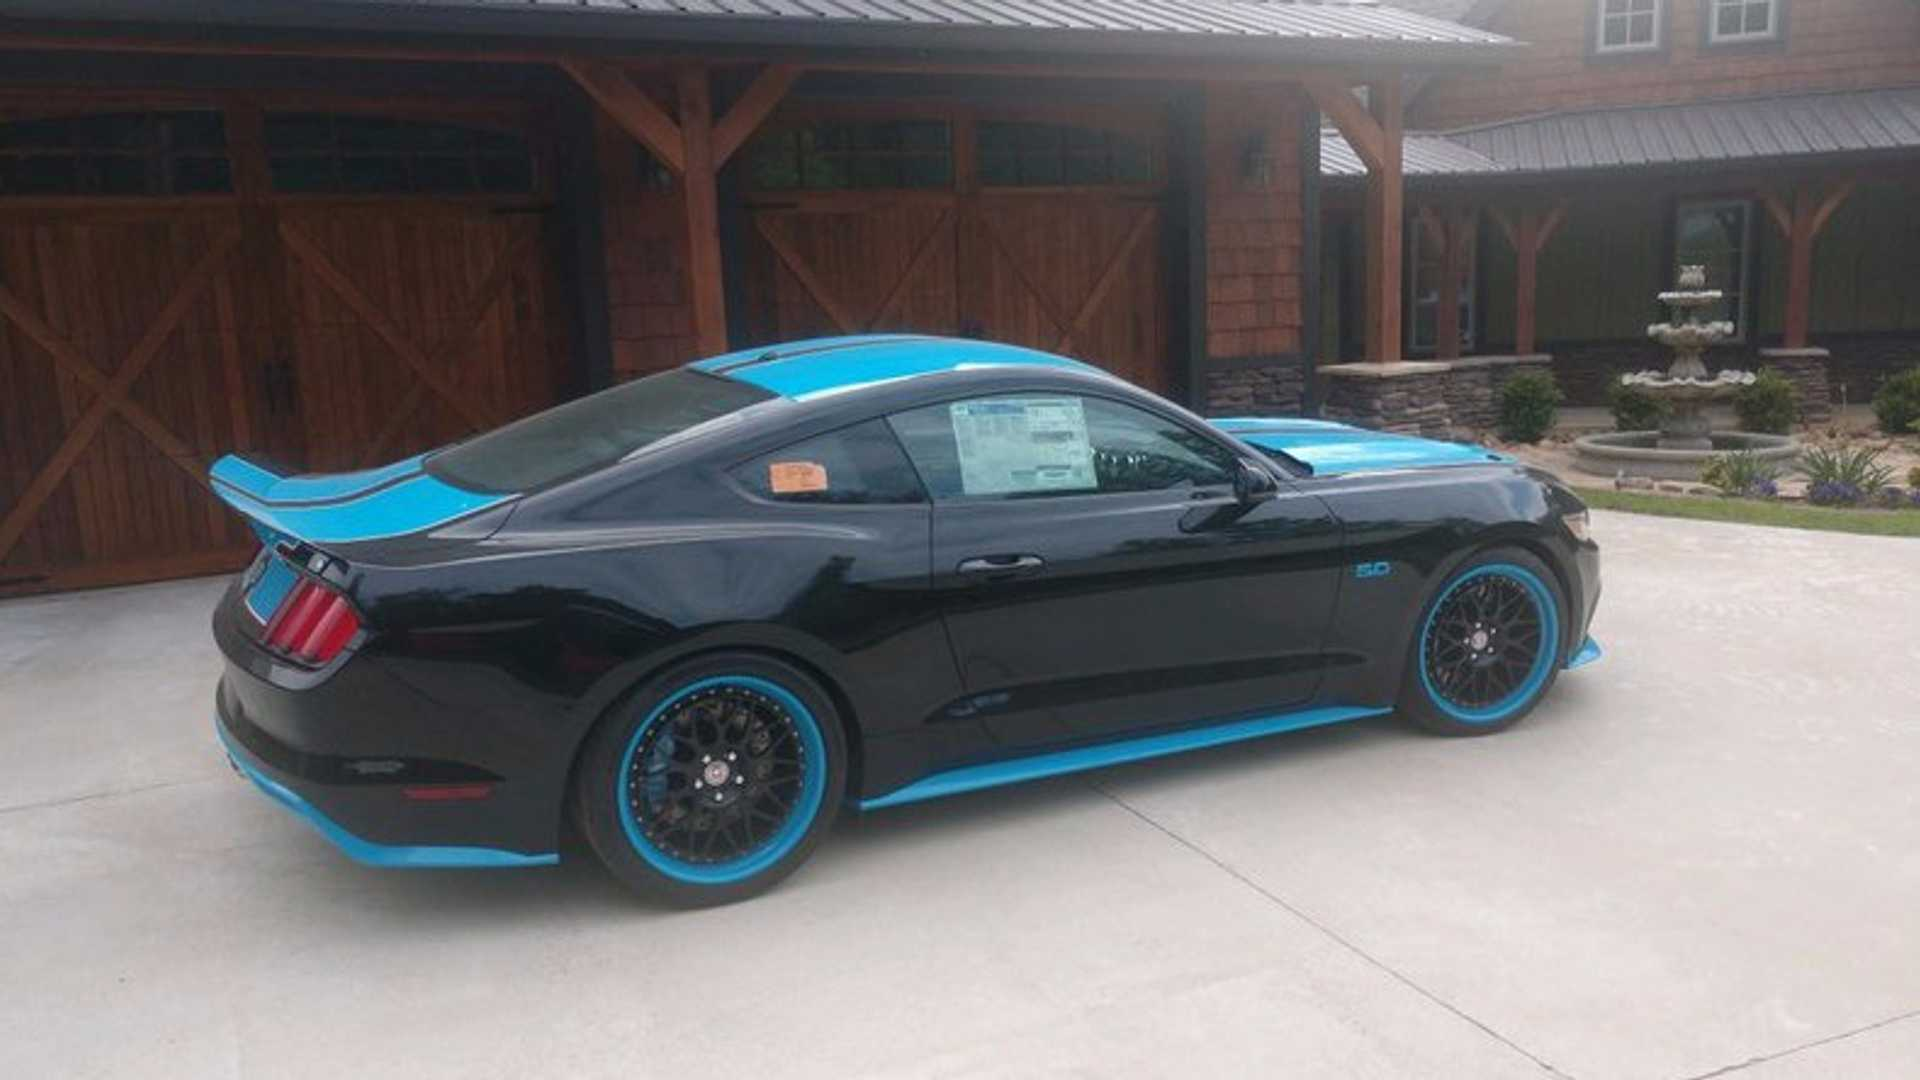 """[""""Super Rare Petty's Garage King Edition 2016 Ford Mustang To Cross Auction Block""""]"""